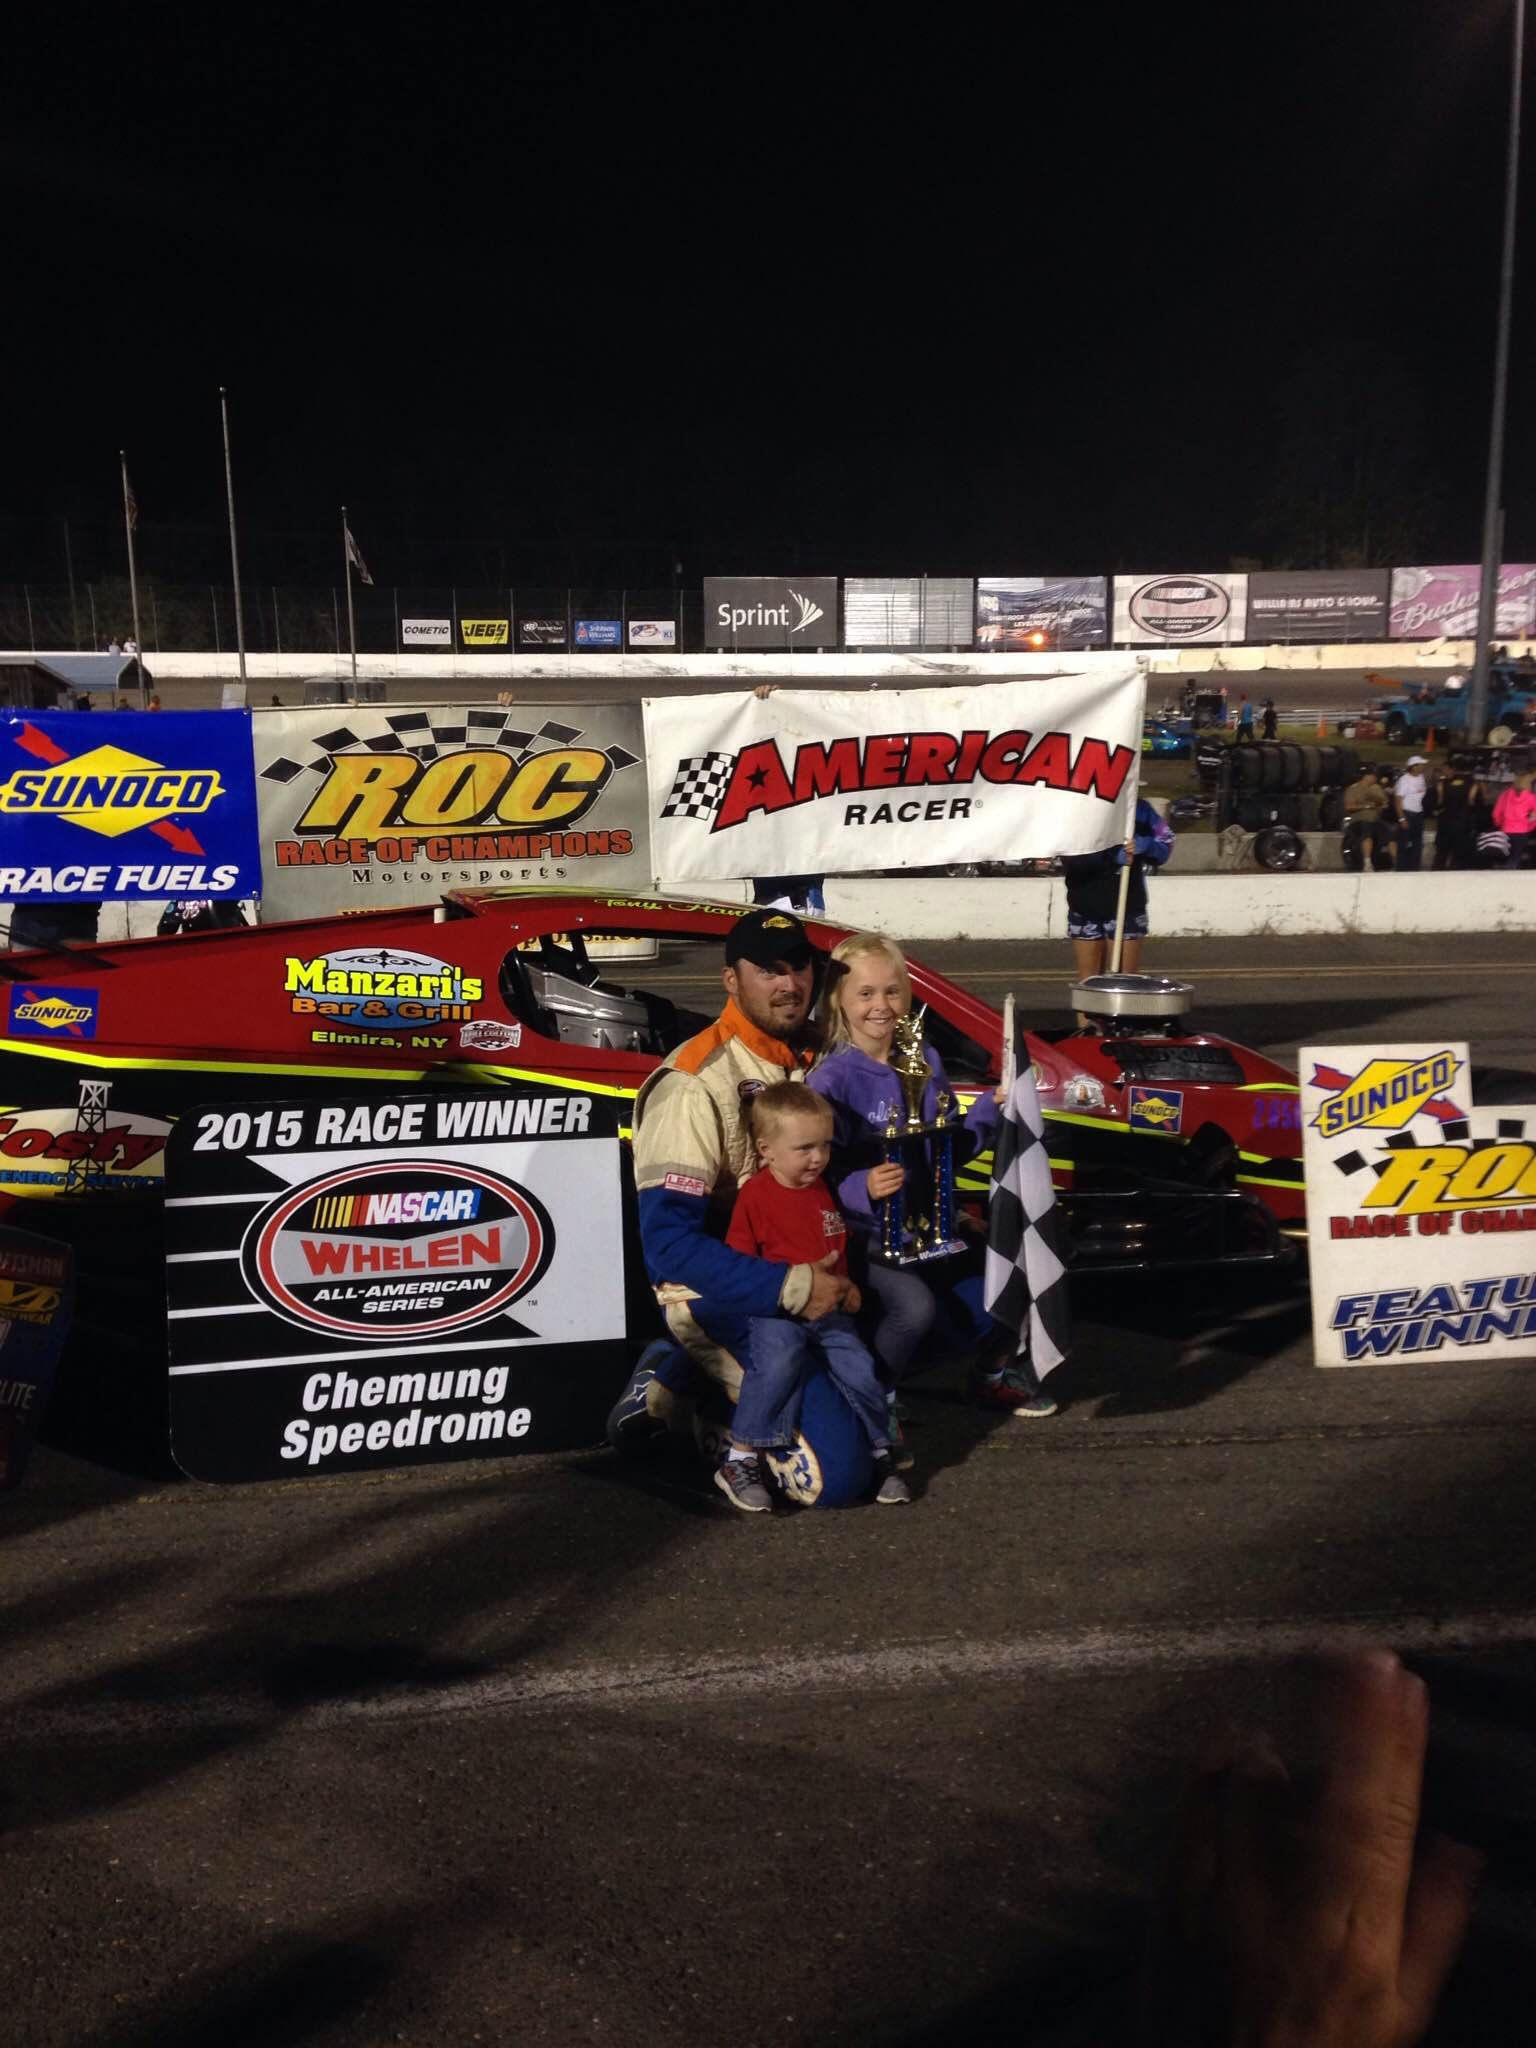 Tony Hanbury won the 2014 Sunoco Race of Champions (ROC) Asphalt Modified Tour 125. The 27th edition of the race will be run this weekend at Lancaster.